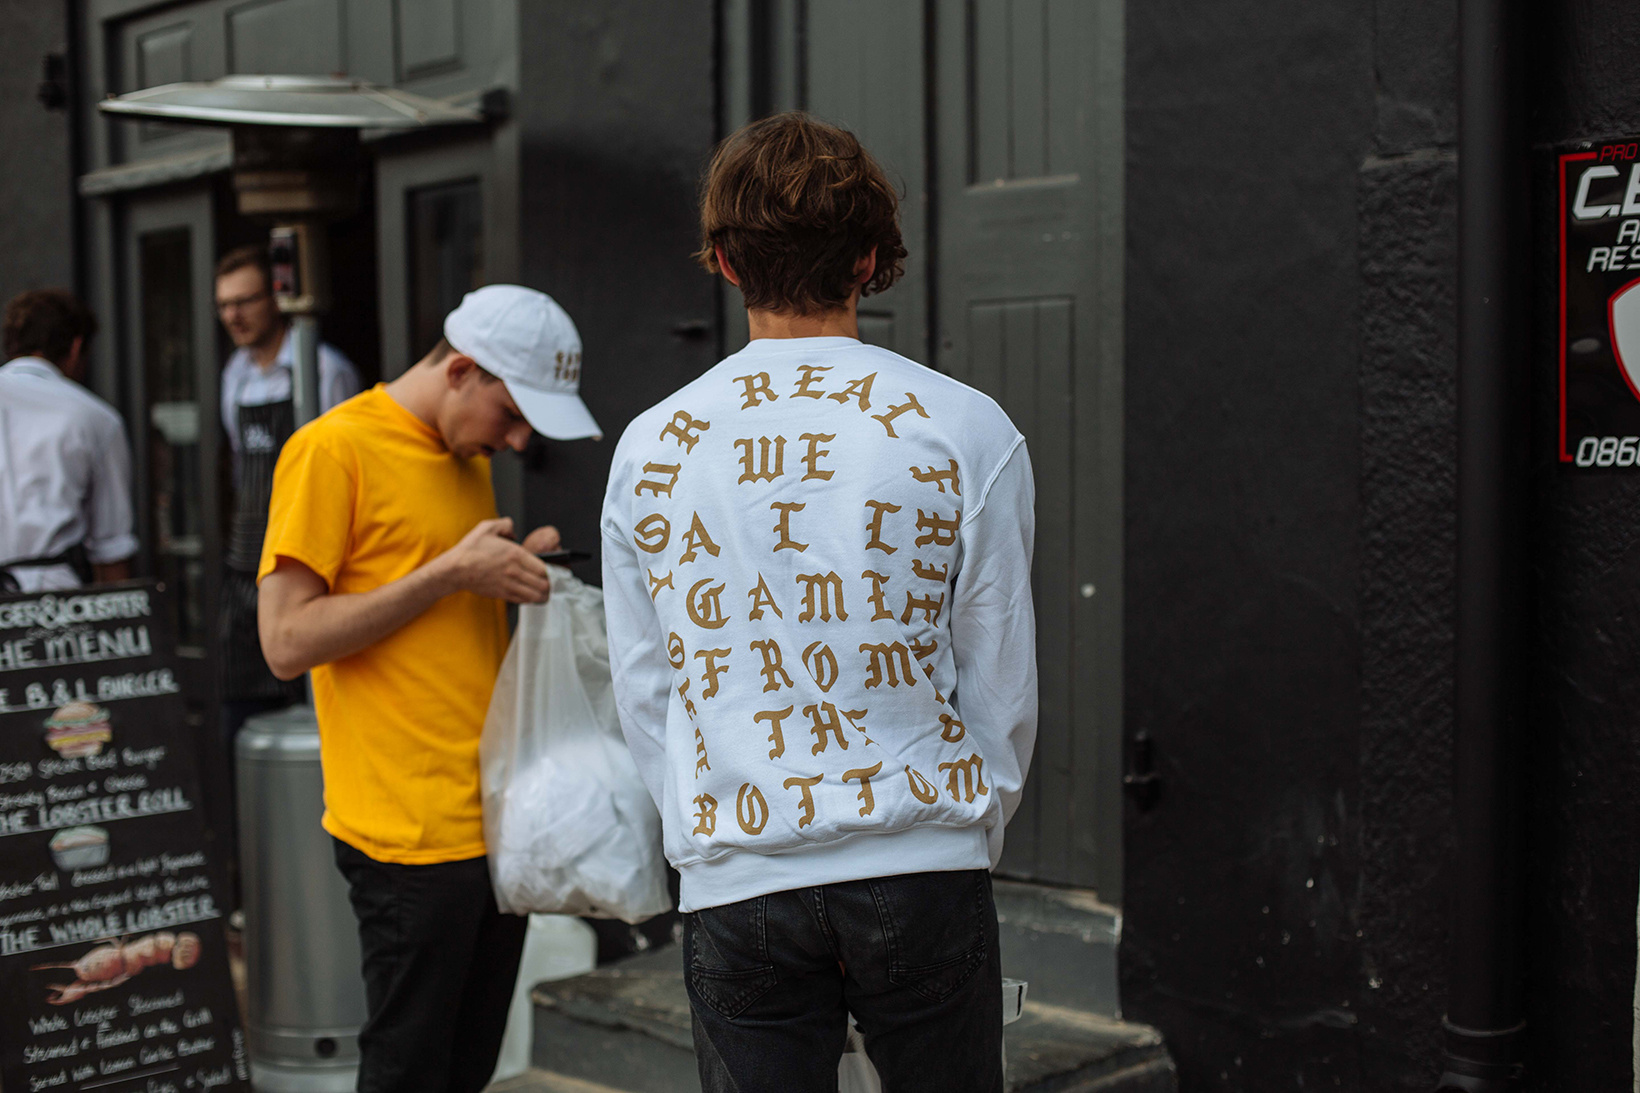 Kanye West's 'Life of Pablo' Cape Town Pop-up Store Launch the life of pablo takes over cape town 5